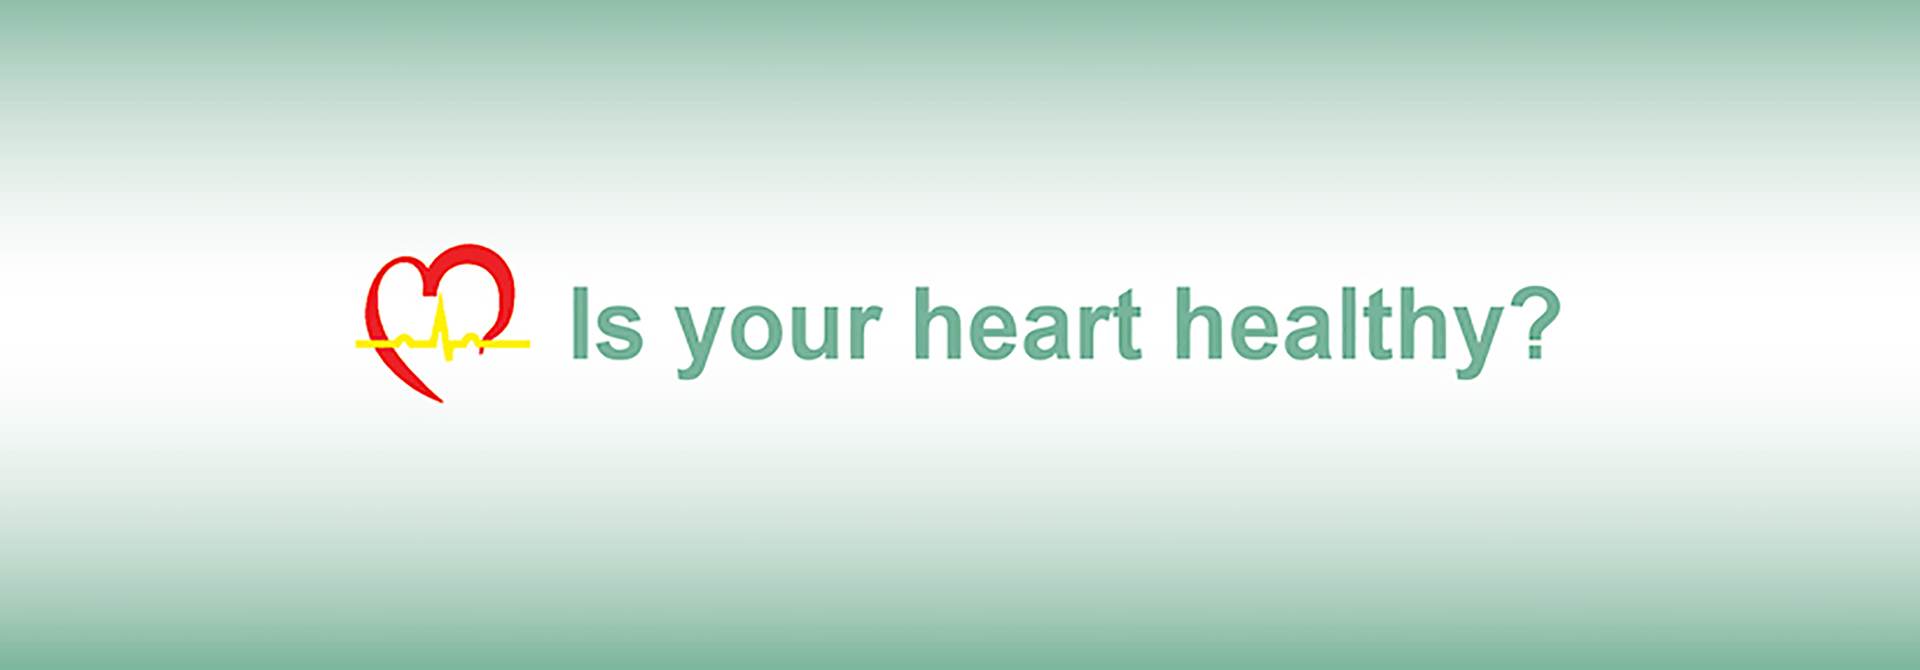 Is-Your-Heart-Health-?